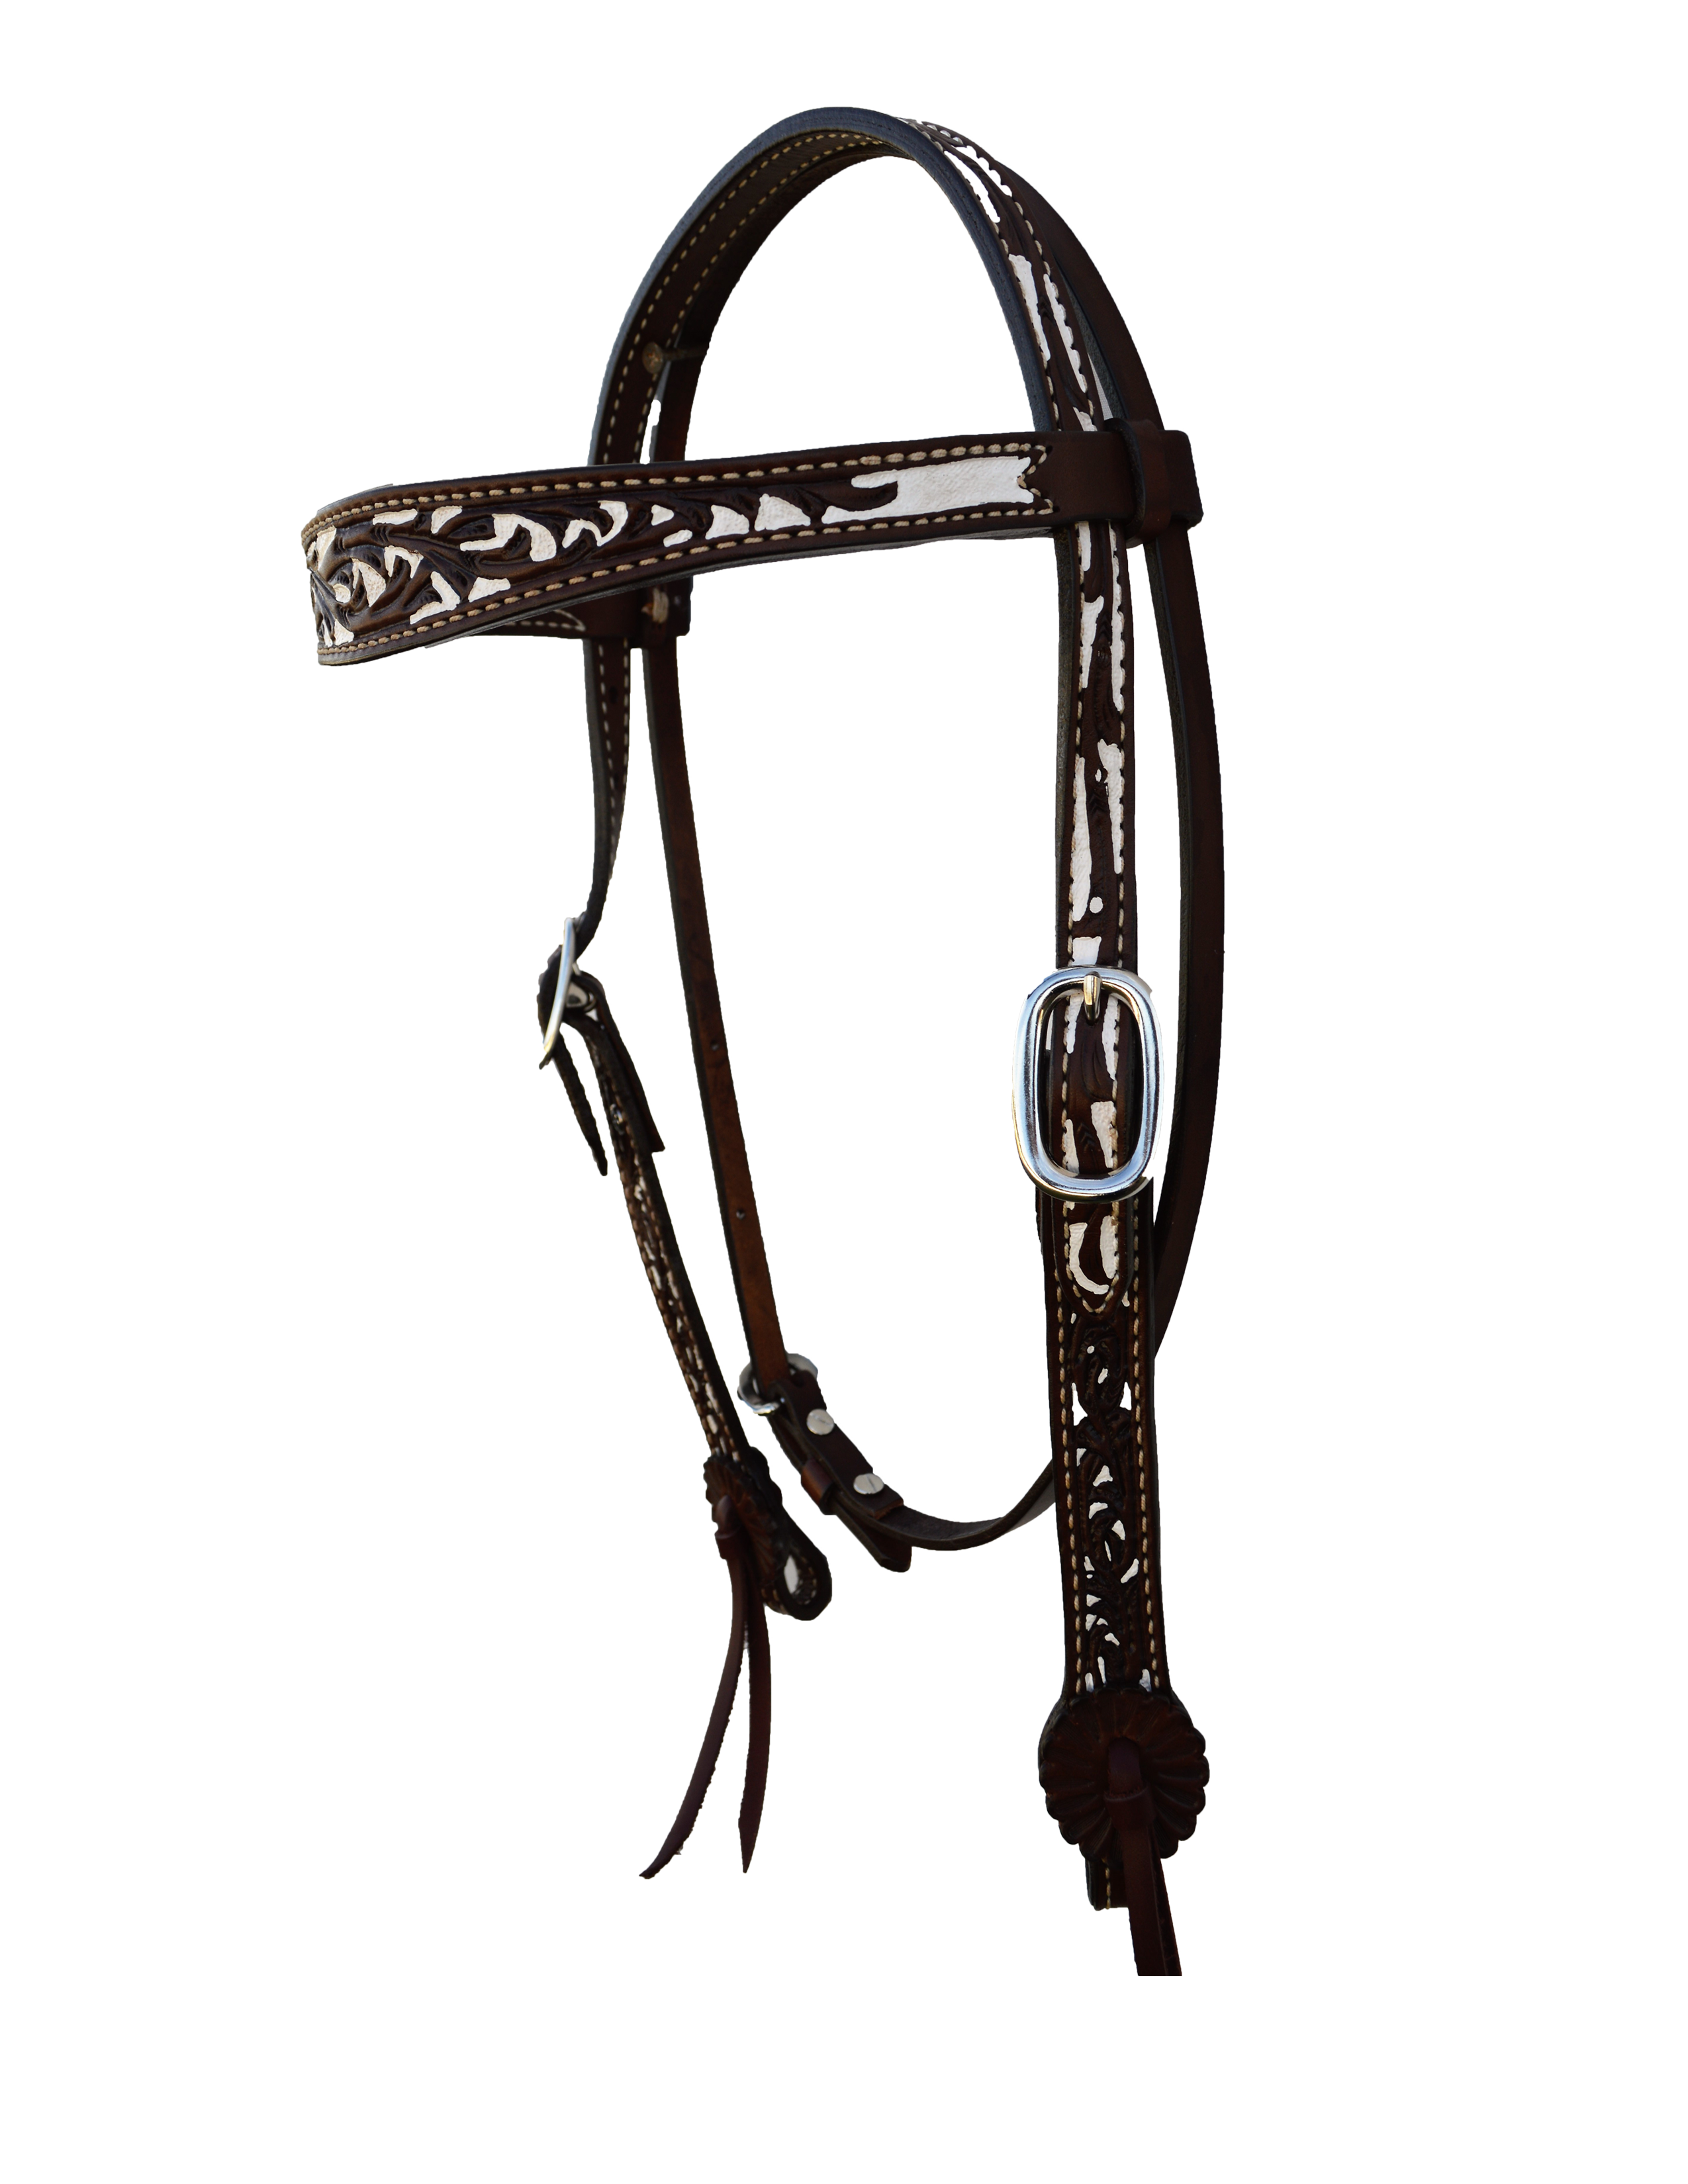 2800-CW Headstall Contoured Shaped: Dark Chocolate leather w/ a Floral Tooling w/ a White Painted Background